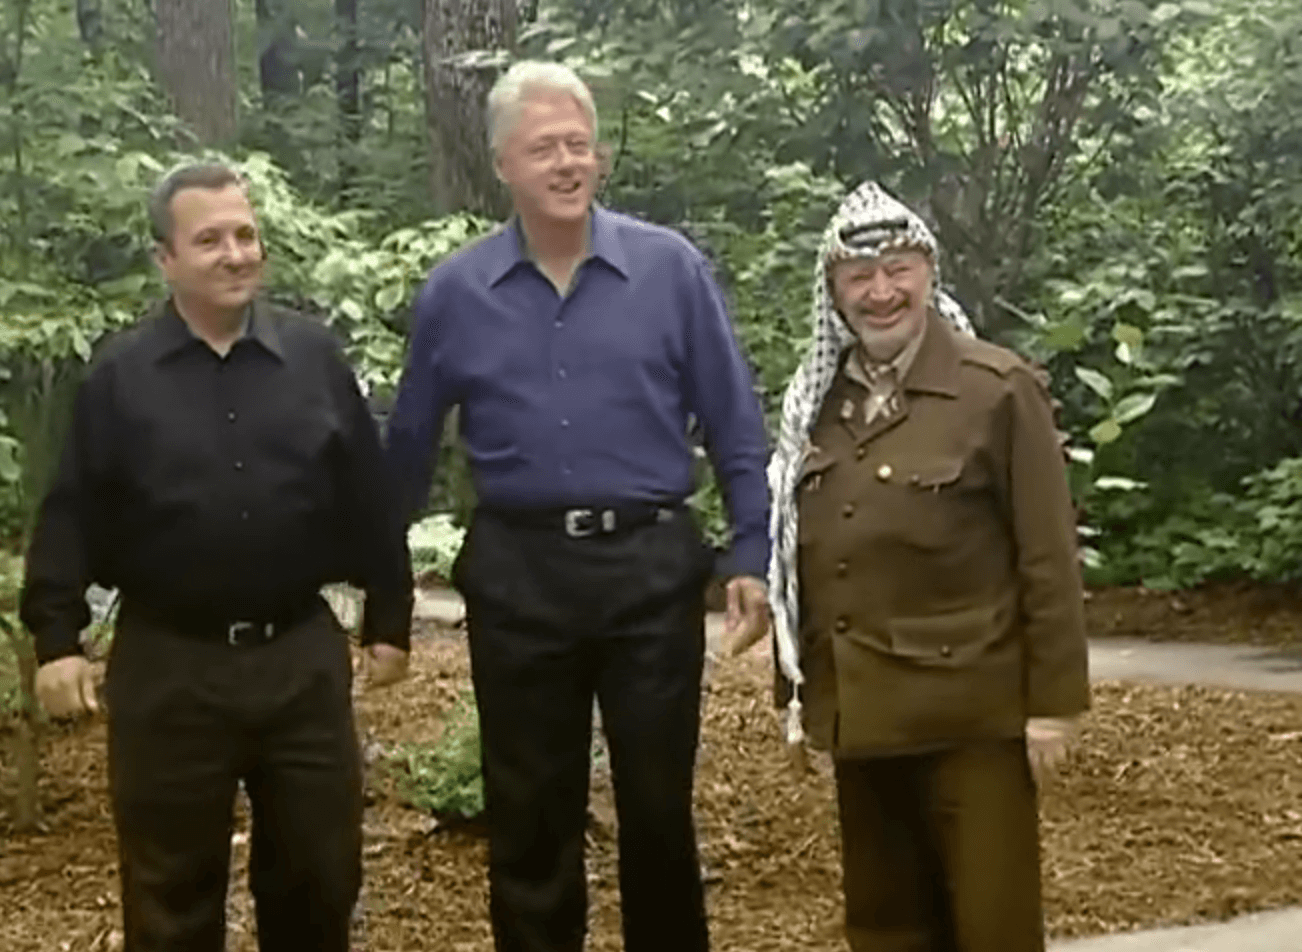 Photo-op at Camp David with President Clinton, Chairman Yasser Arafat and Prime Minister Ehud Barak, July 11, 2000. (Courtesy: William J.Clinton Presidential Library)